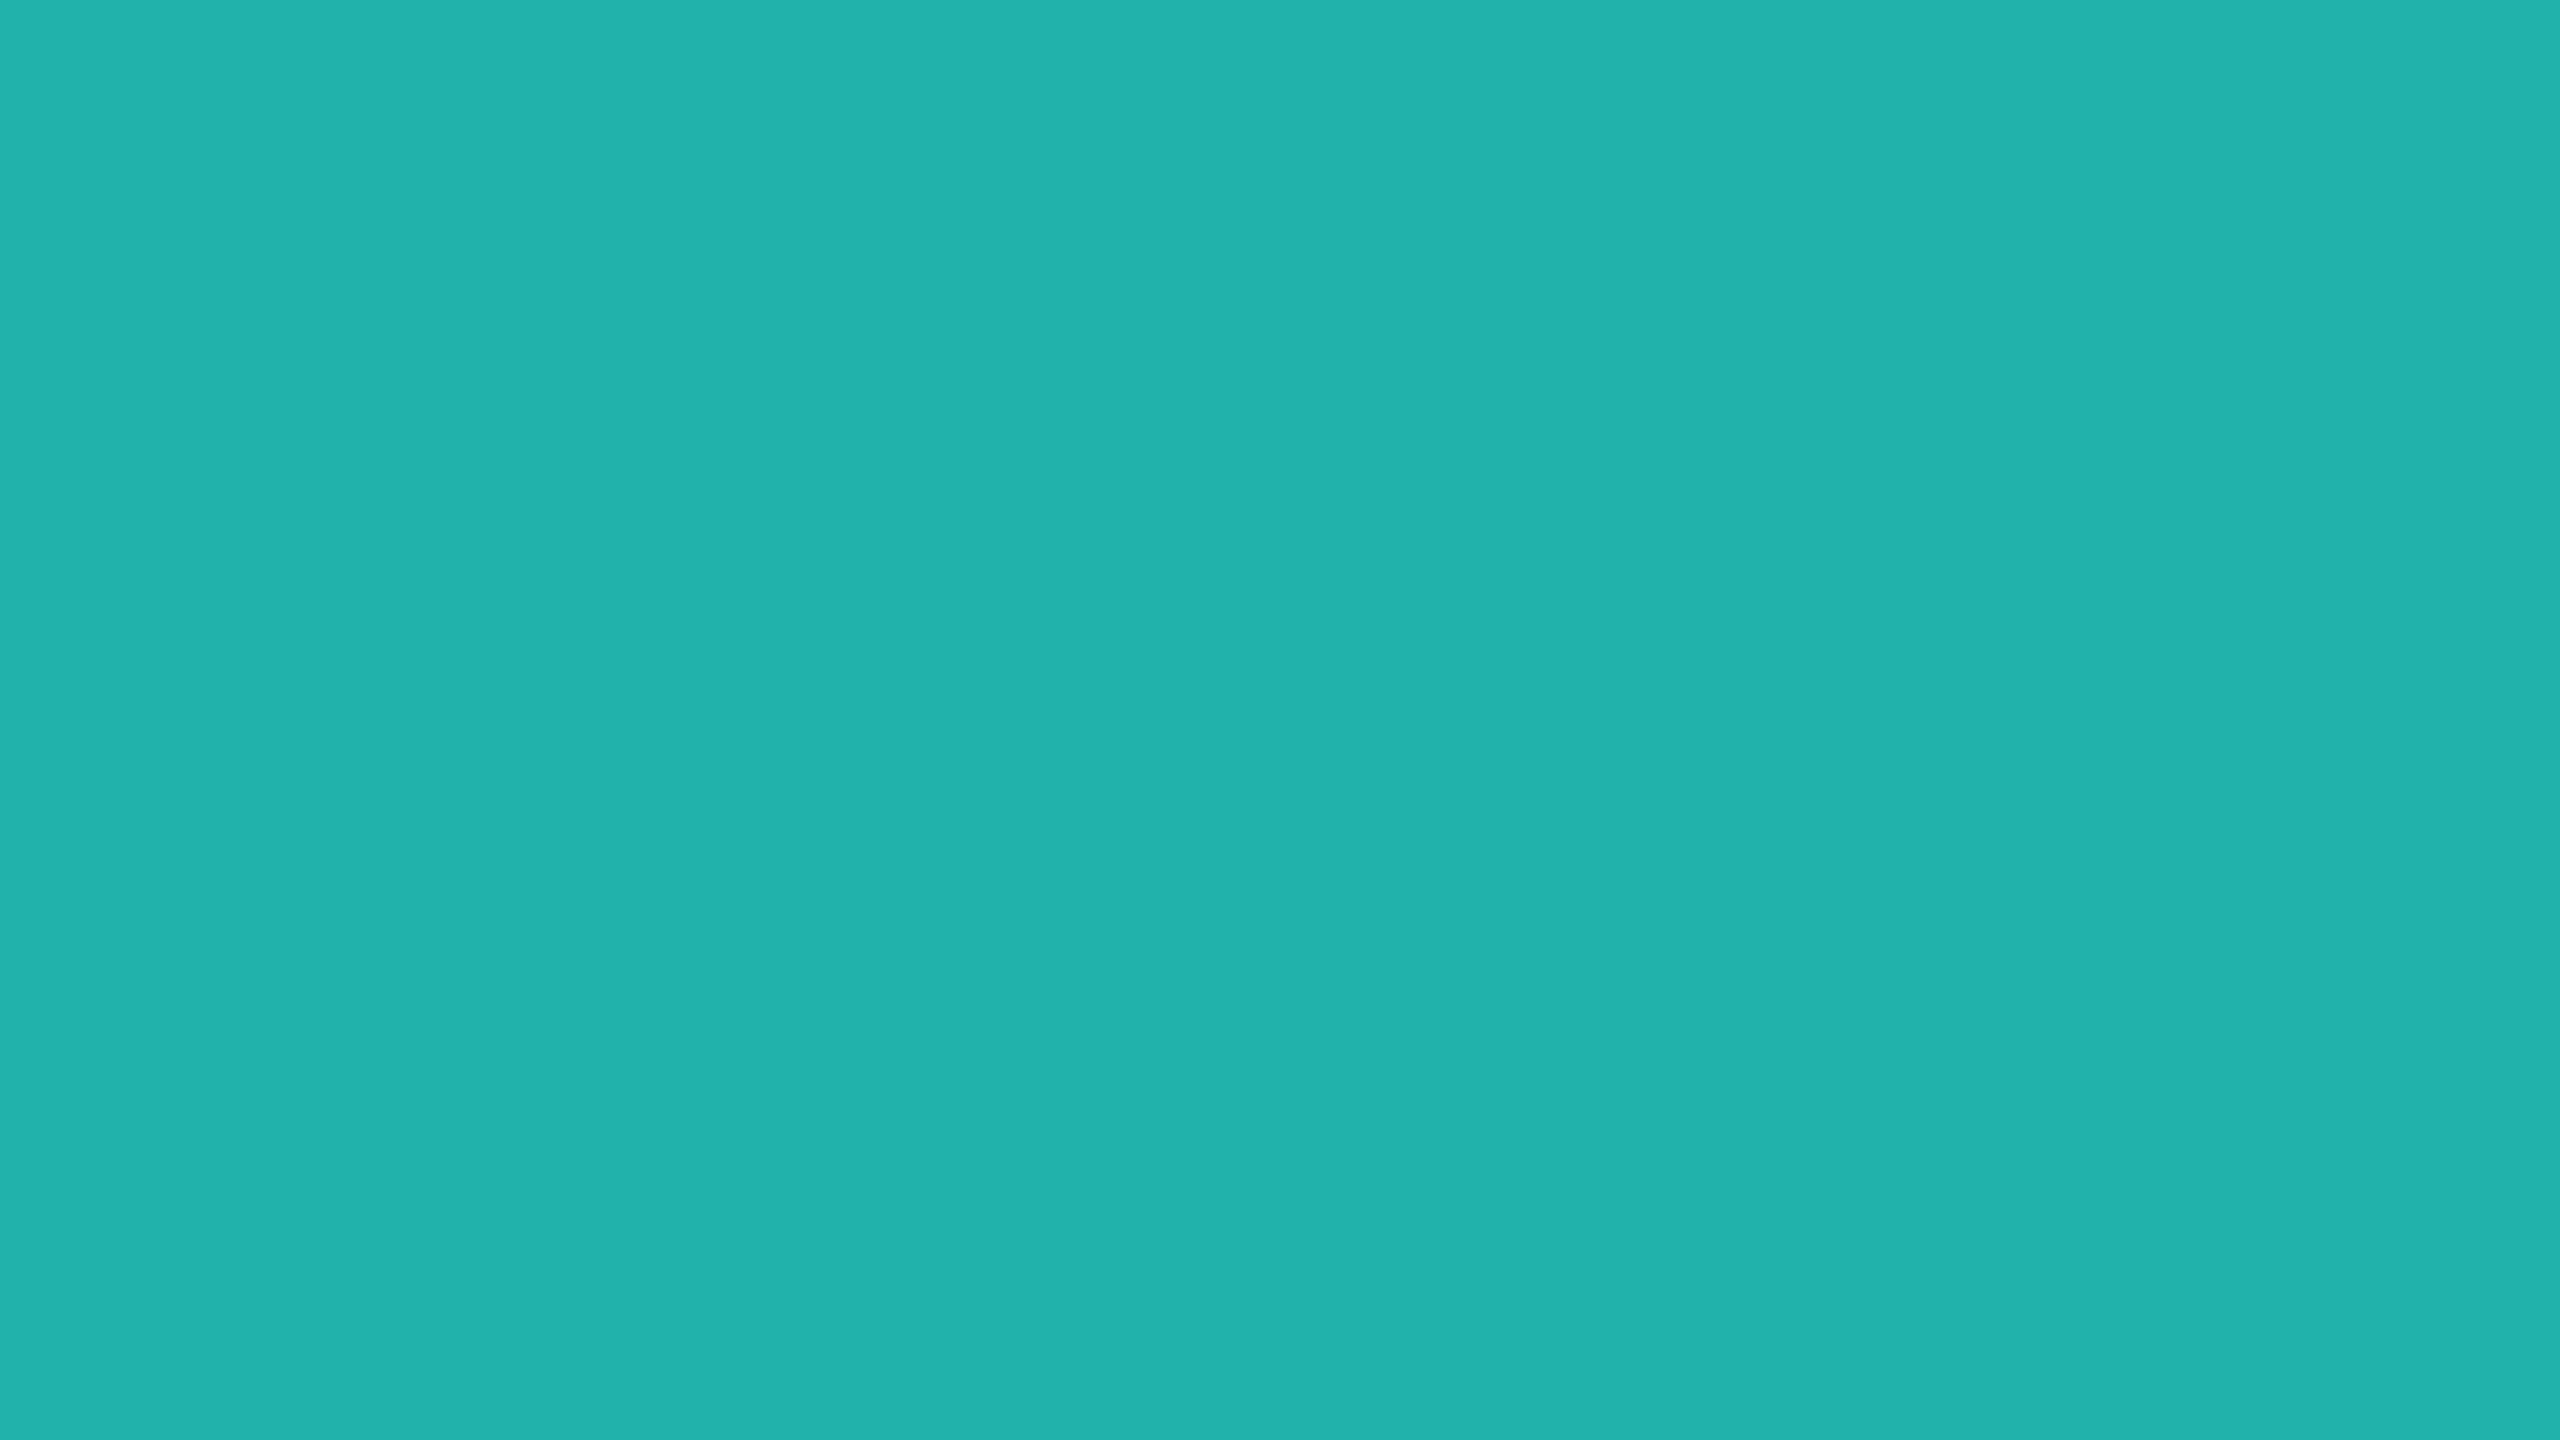 2560x1440 Light Sea Green Solid Color Background